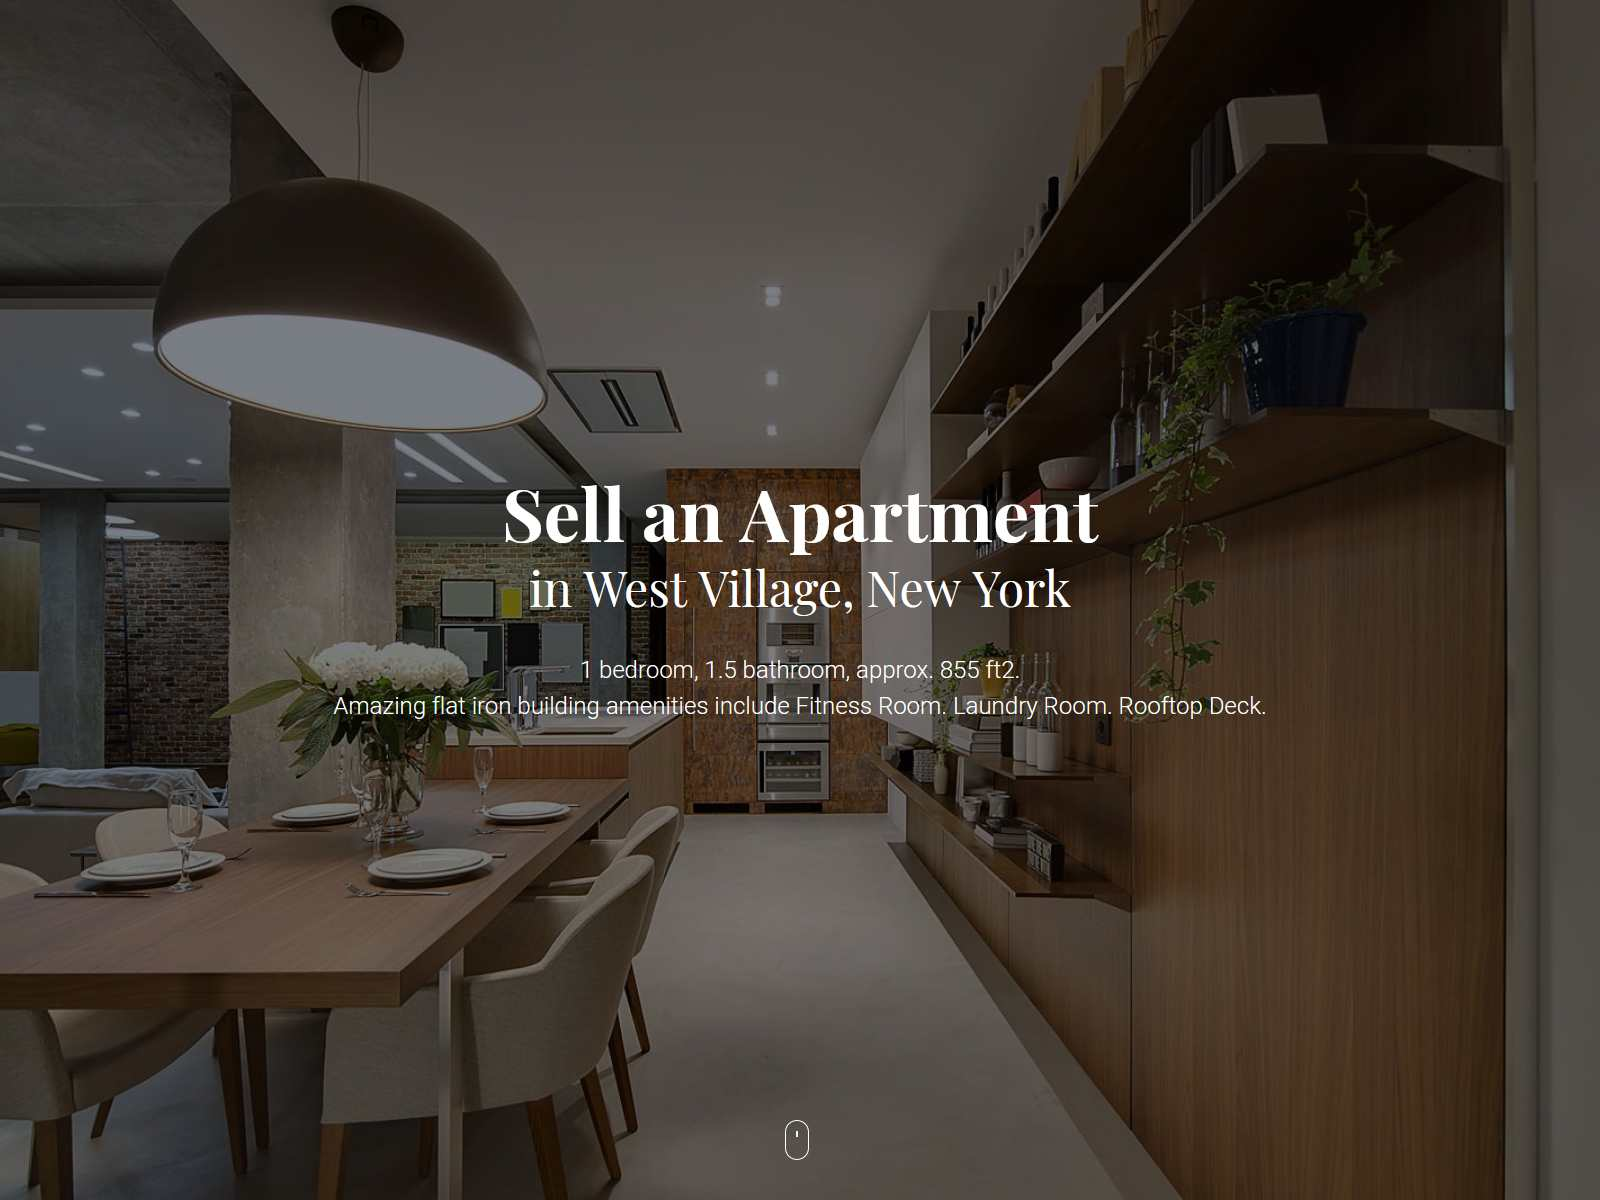 201 Murray - Single/Multi Property WordPress Theme architecture wordpress themes, real estate wordpress theme